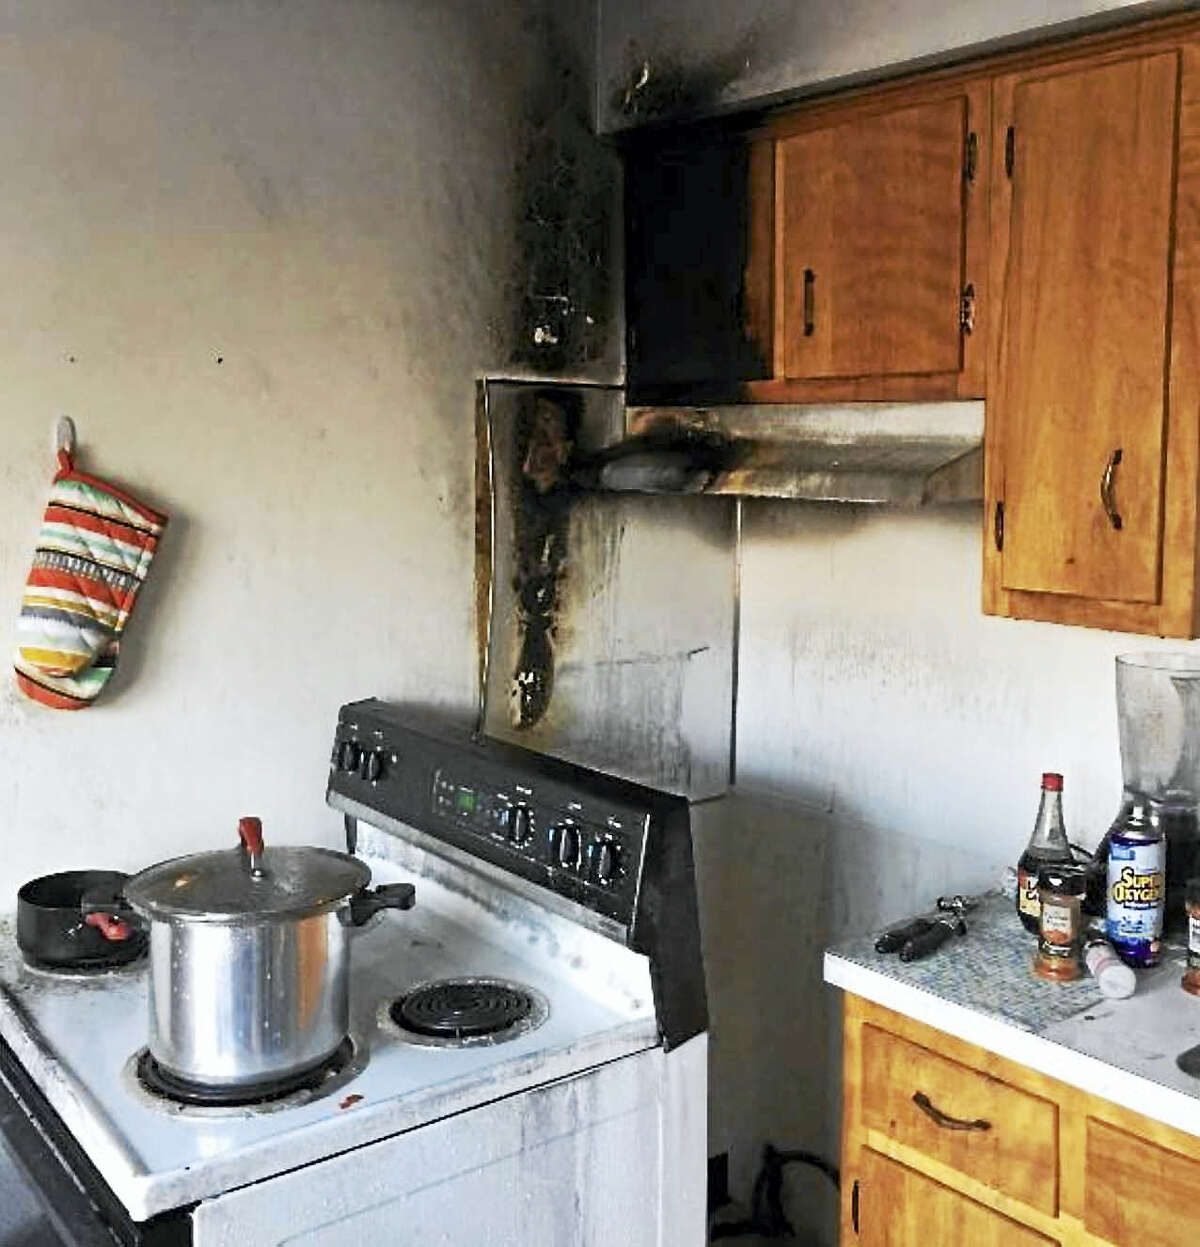 Firefighters responded to a fire on Wednesday evening at Whitney Village Quinnipiac University student housing complex at 3075 Whitney Ave.